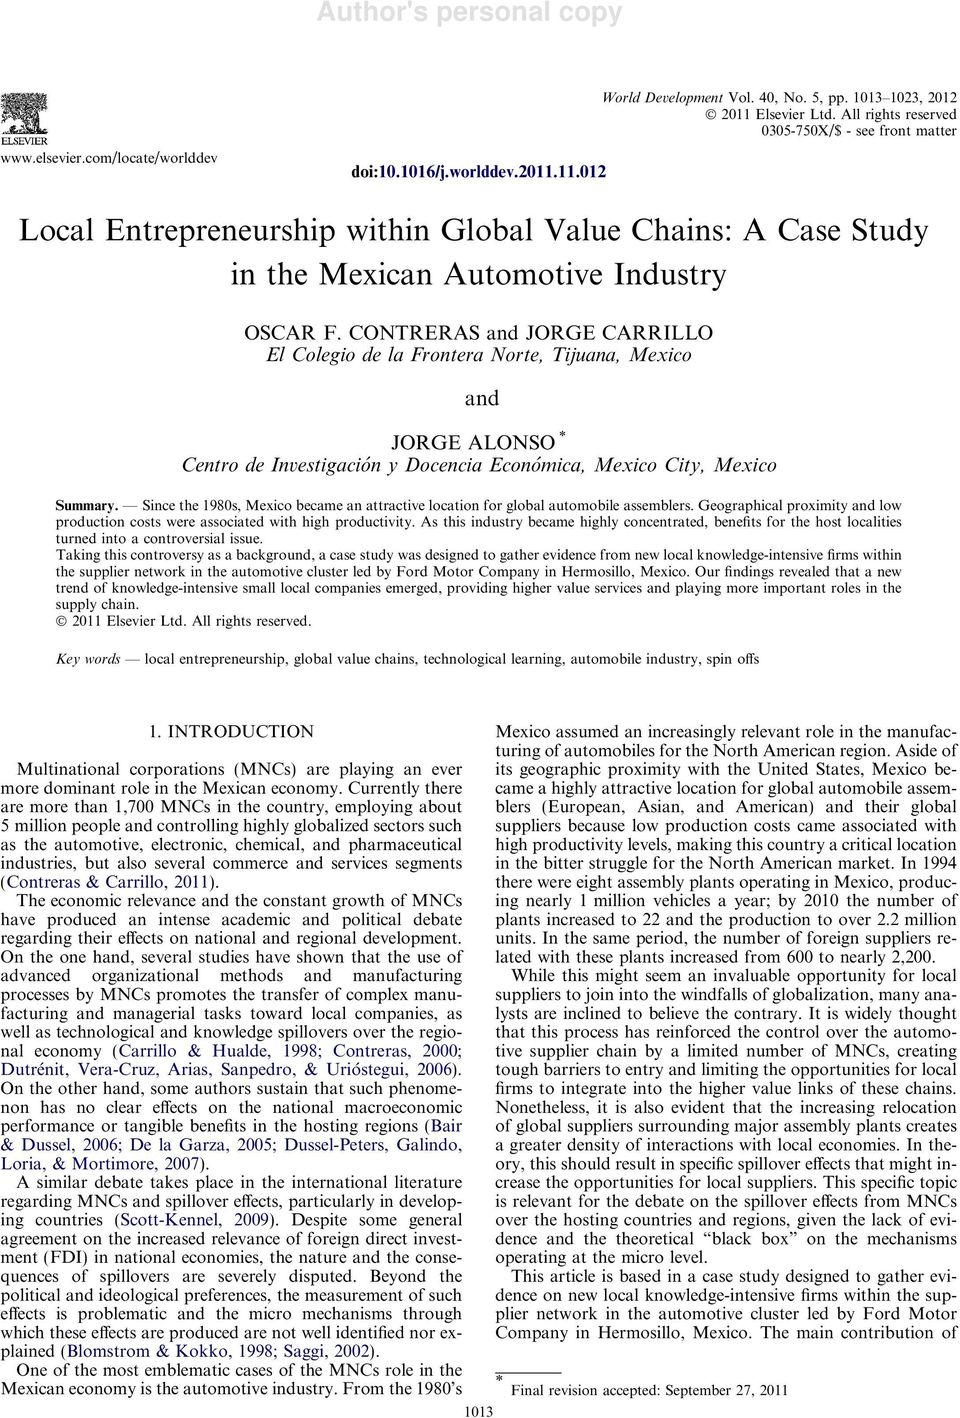 Since the 1980s, Mexico became an attractive location for global automobile assemblers. Geographical proximity and low production costs were associated with high productivity.